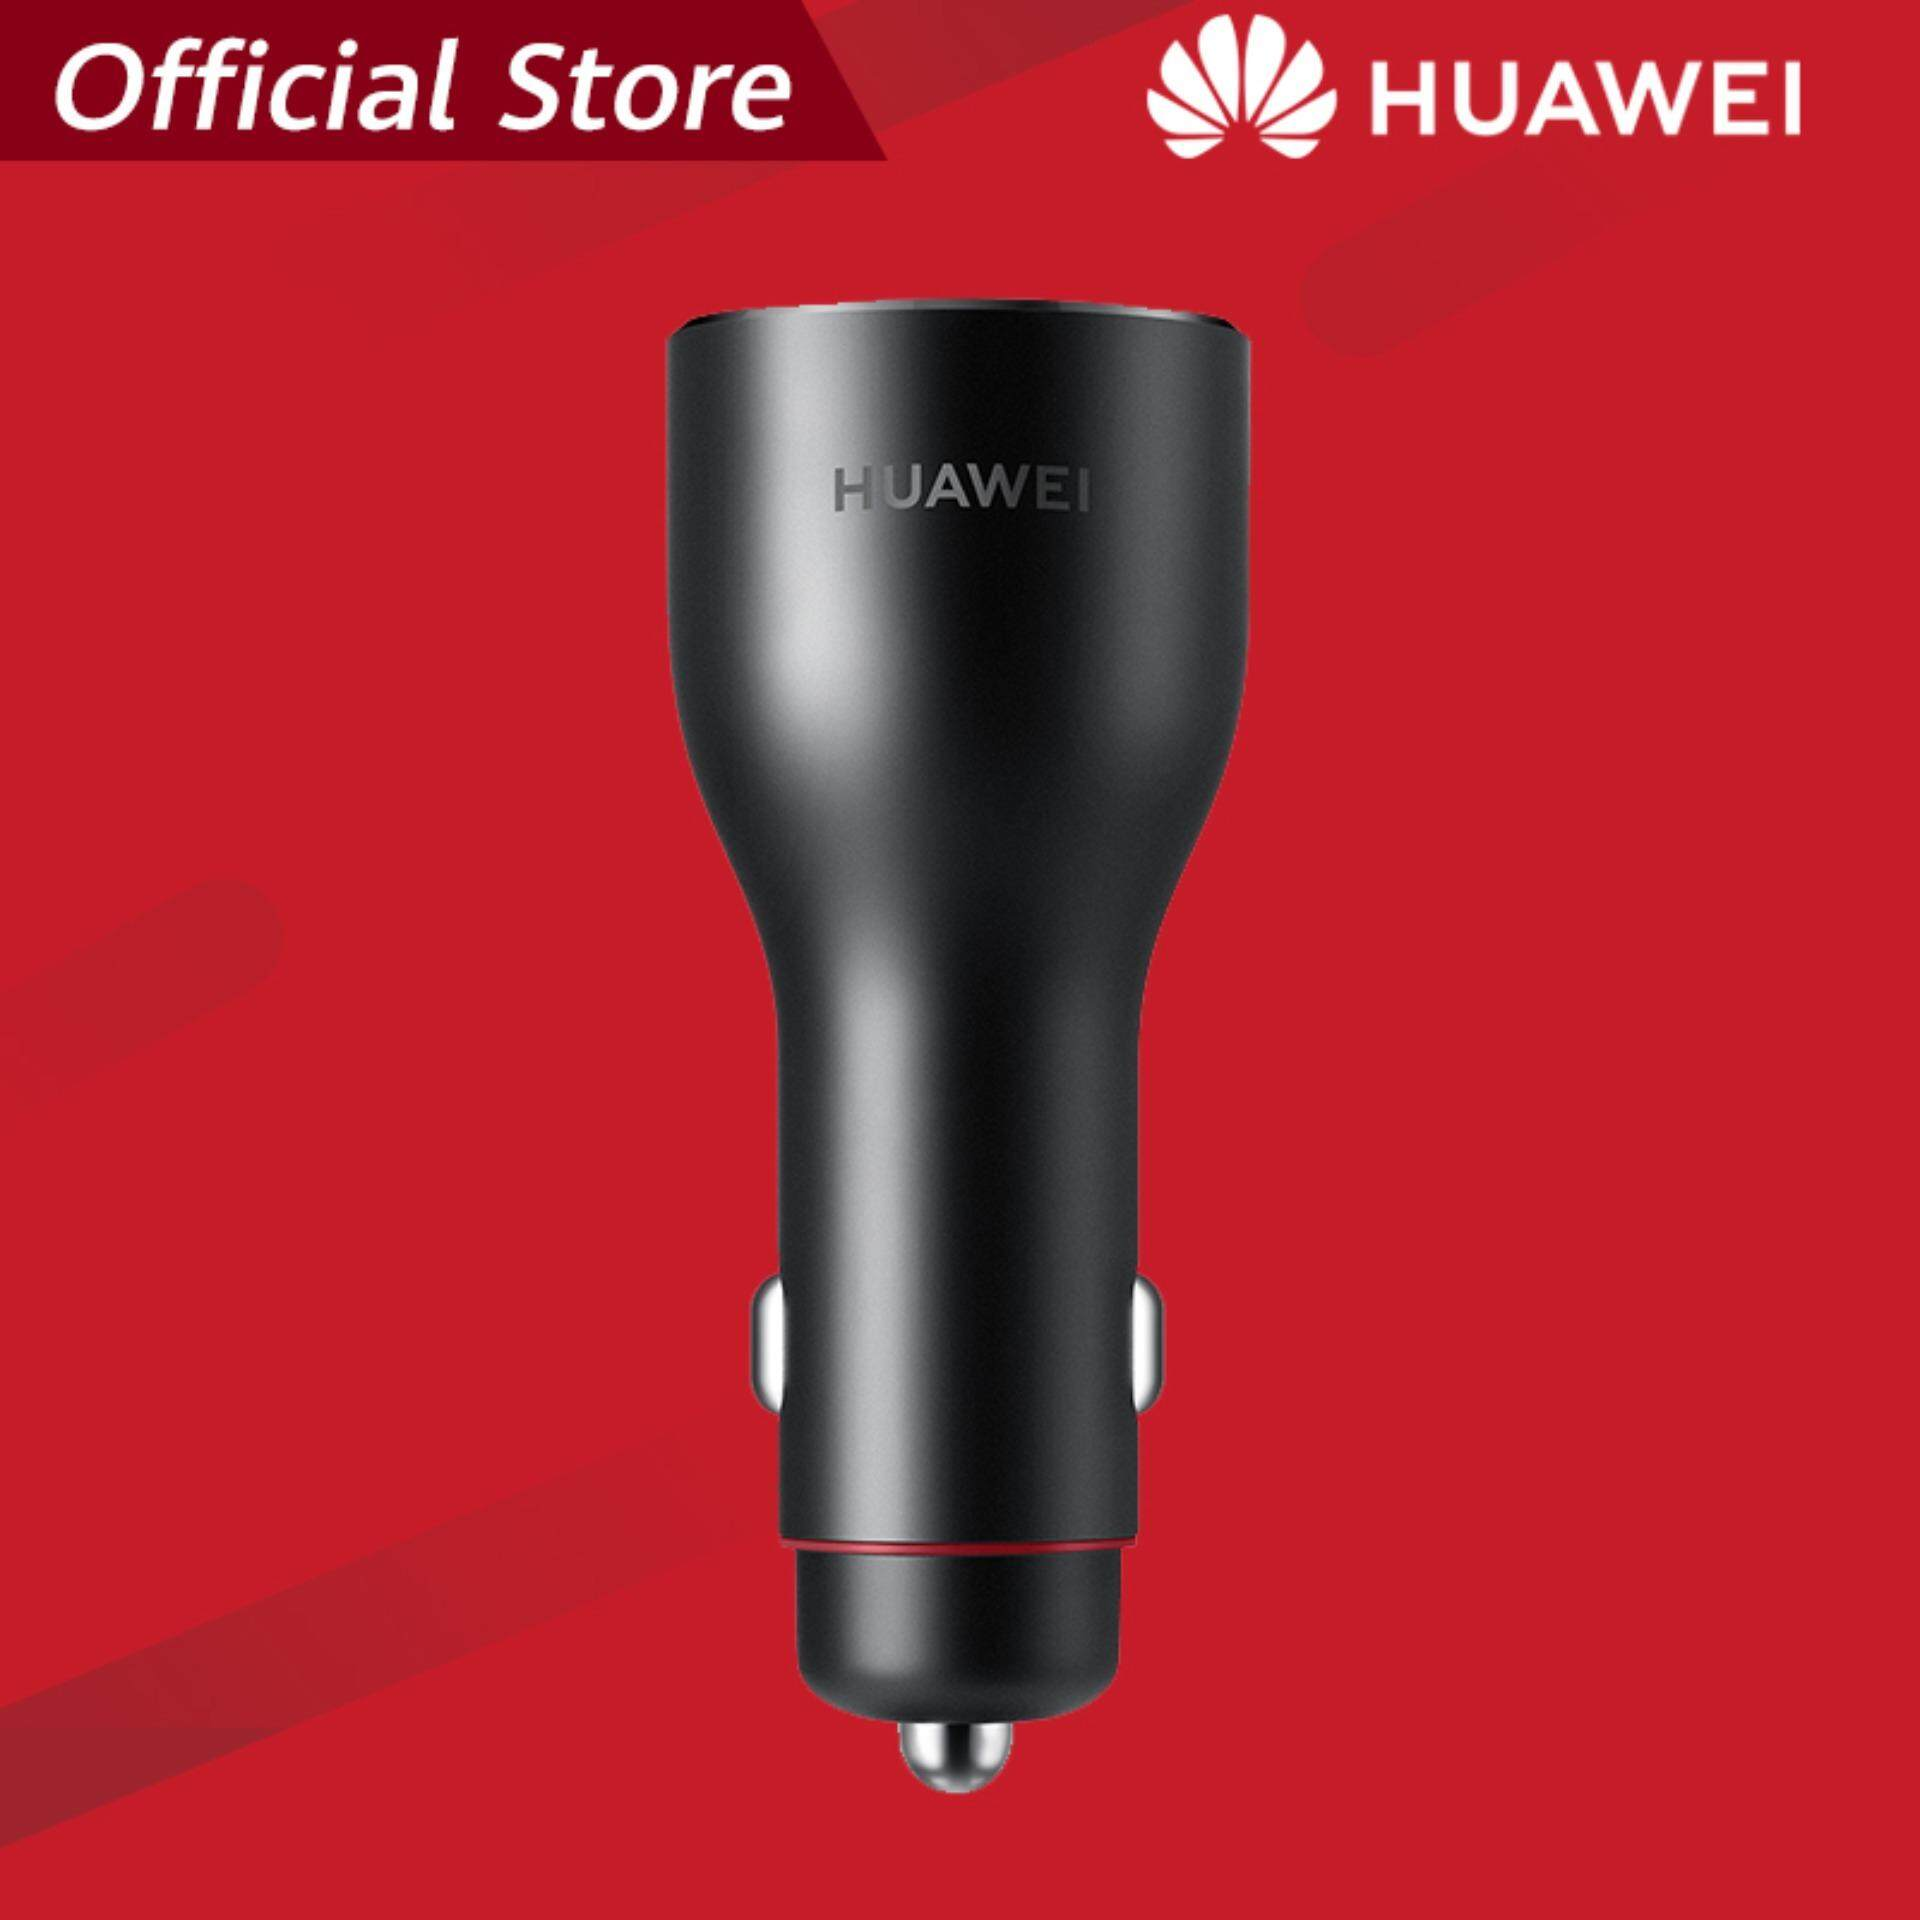 Huawei Car Charger SuperCharge (Max 40W) General